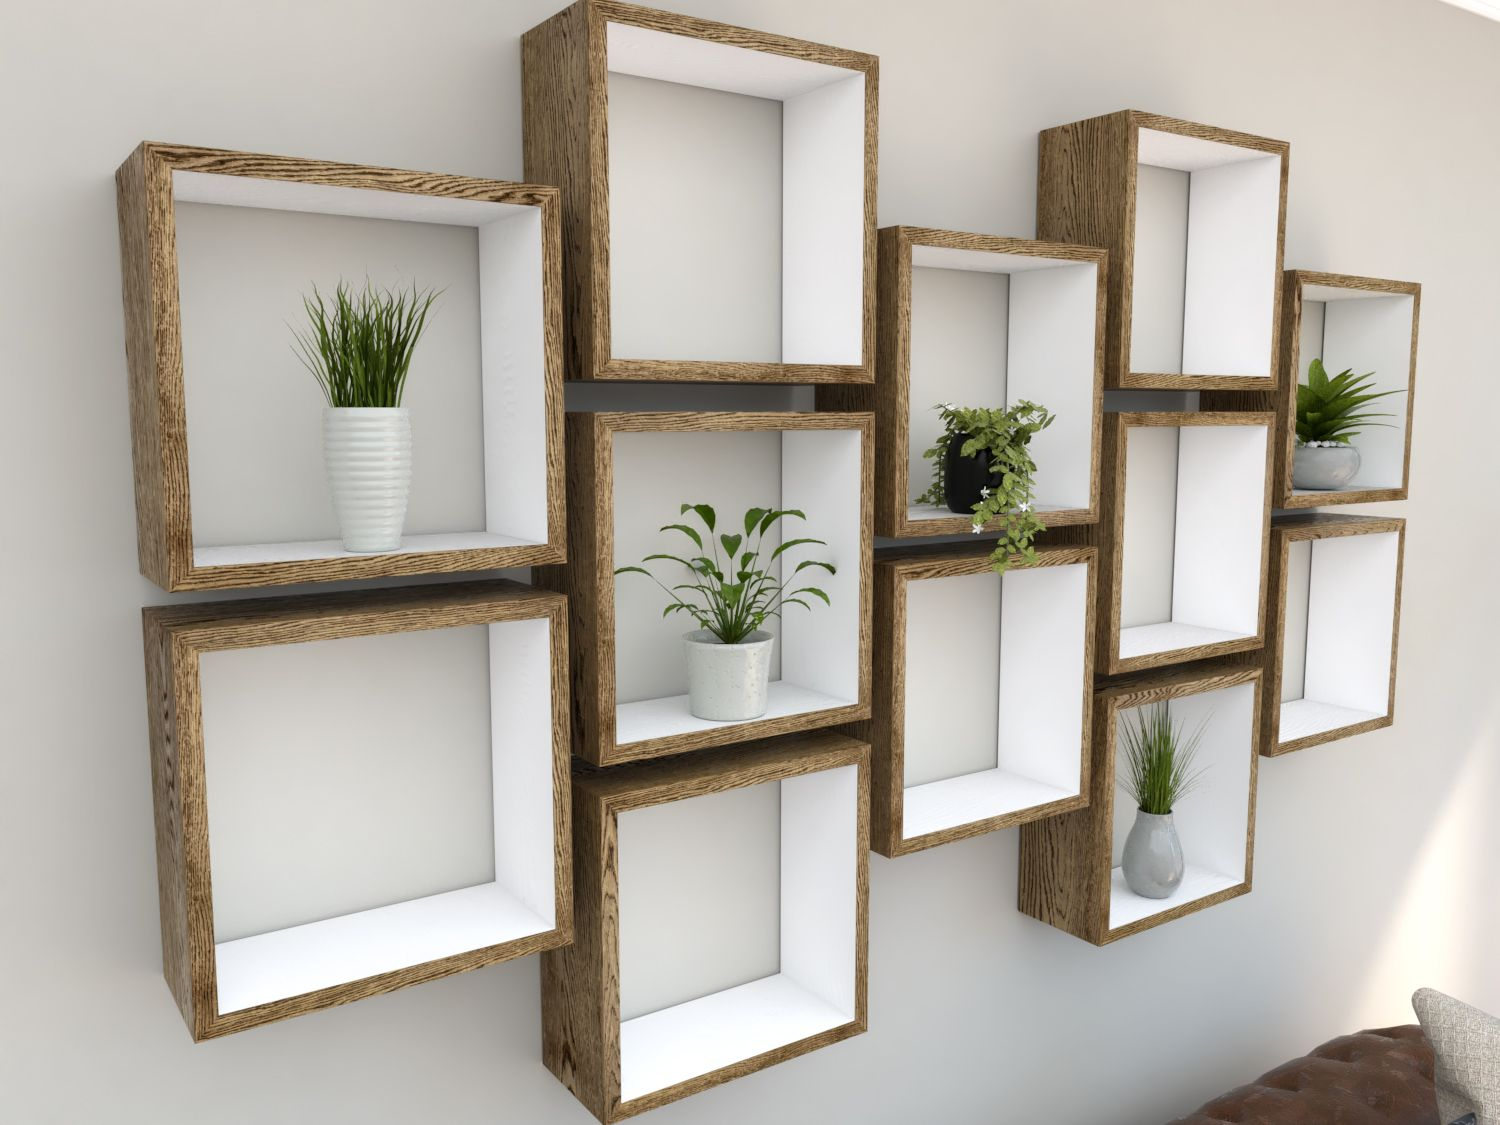 Shelves Cube Shelves Square Box Wall Boxes Diy Storage Ikea With Baskets Floating For 61 Awesome Decorat Wall Shelves Design Wall Shelf Decor Cube Wall Shelf